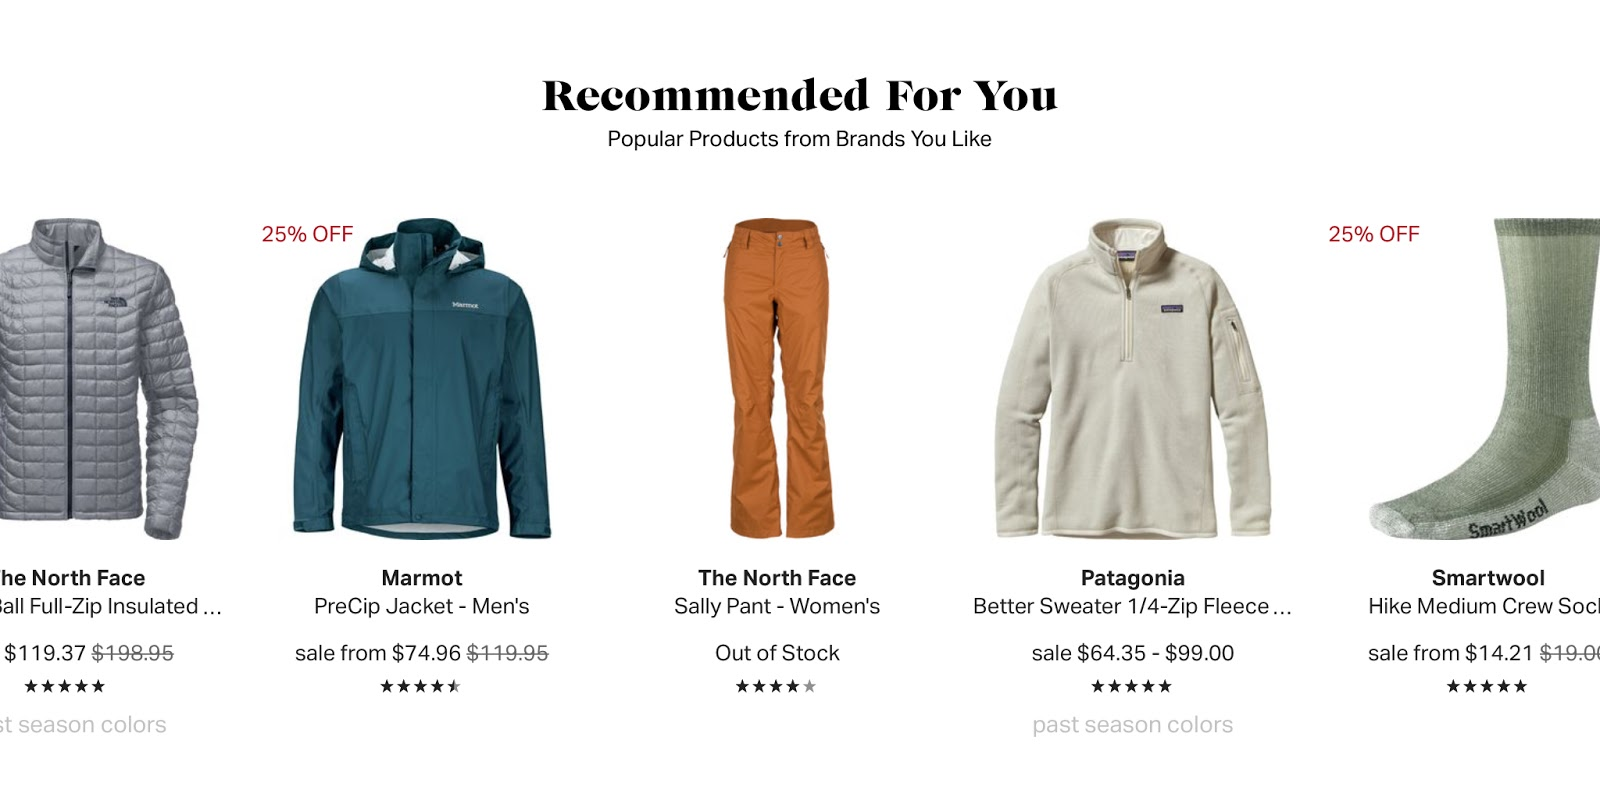 This recommendation did a poor job. I'm not a woman. It would have been better had they saved my previous searches.